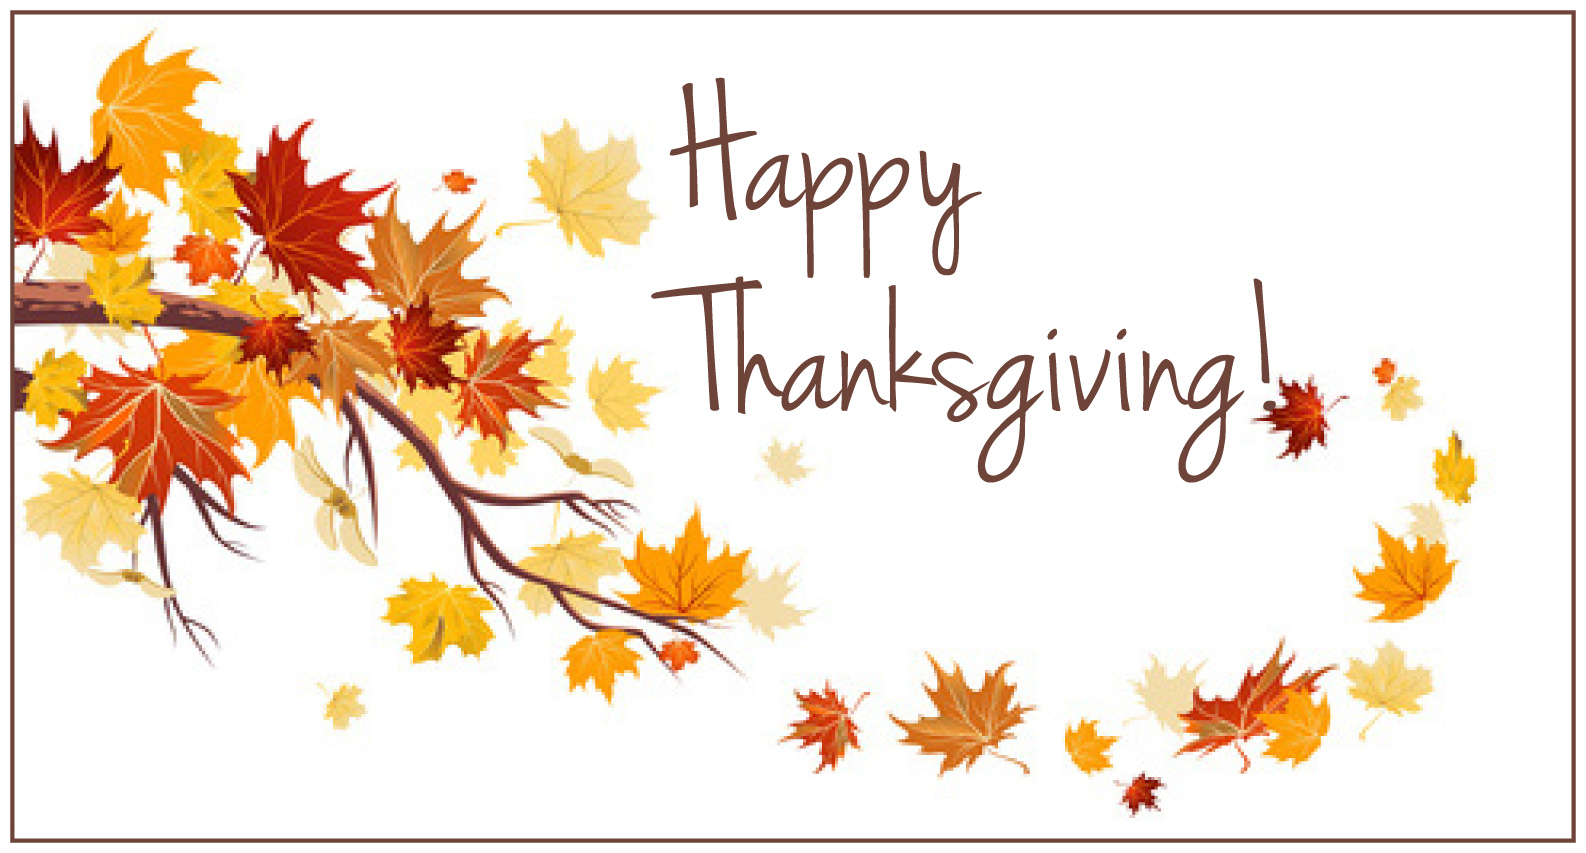 Happy thanksgiving images pictures cards 2016 for friends family happy thanksgiving images kristyandbryce Choice Image